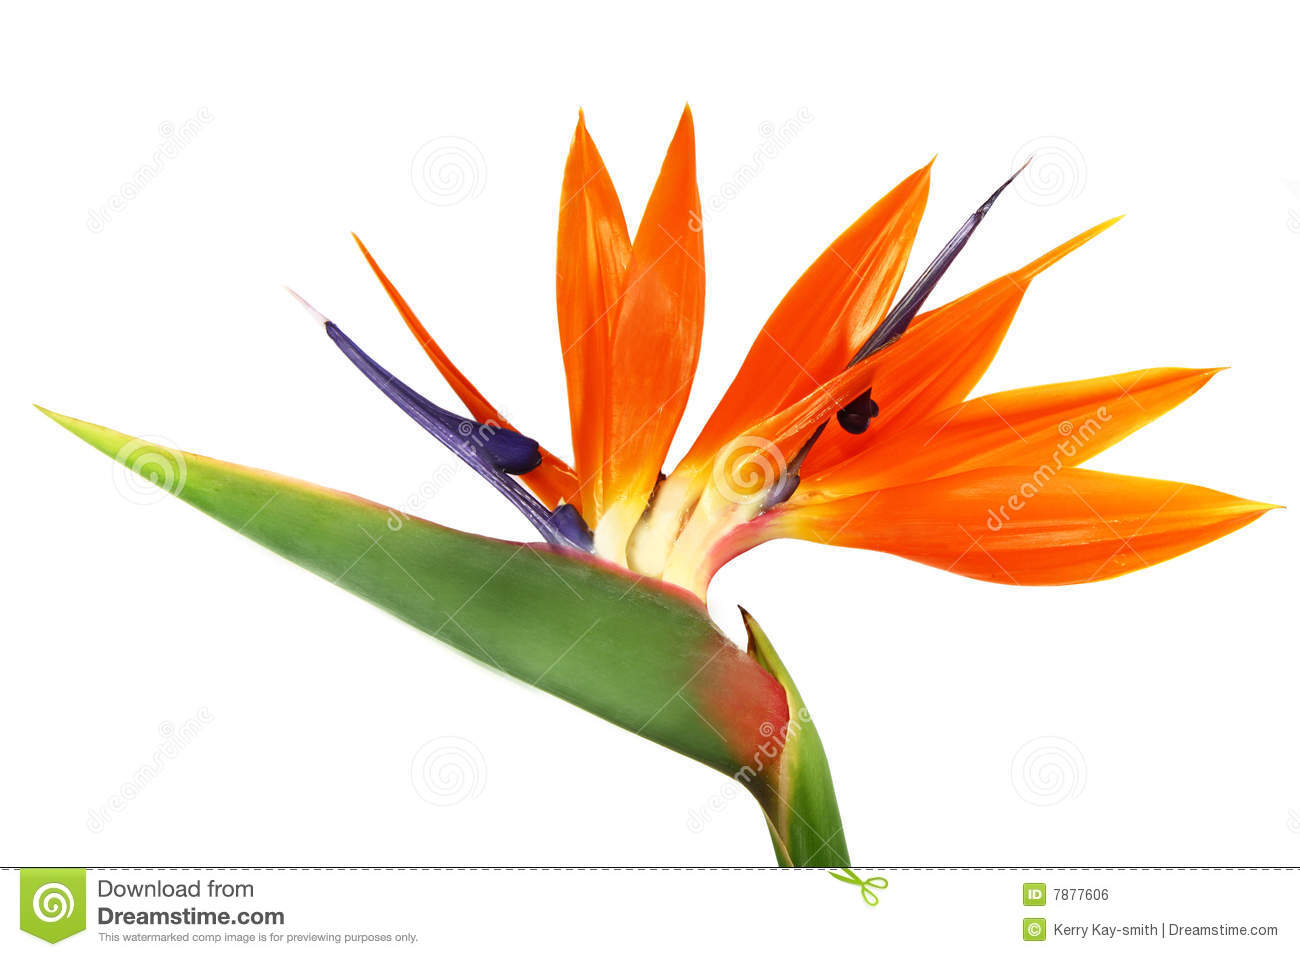 Bird Of Paradise clipart #5, Download drawings